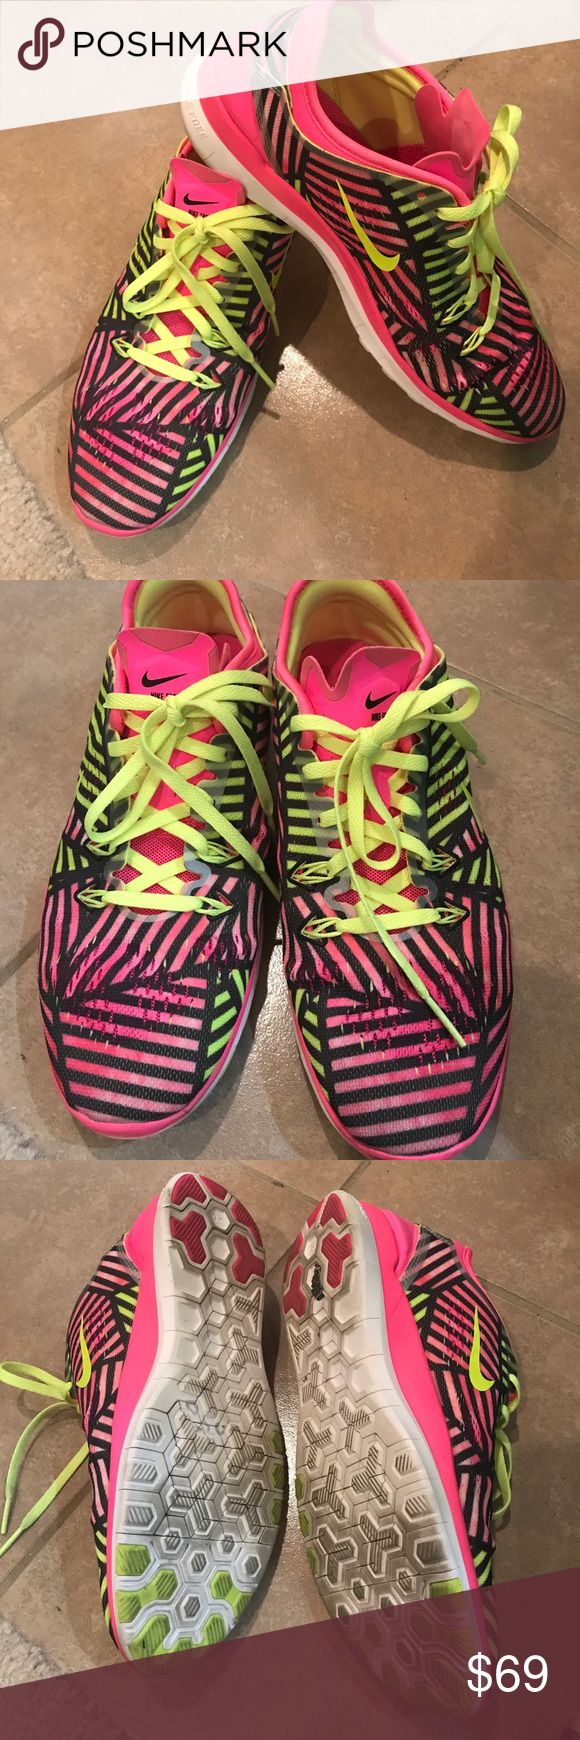 Pretty Nike Free sneakers in pink and neon yellow Pretty Nike Free sneakers in pink and neon yellow. Size 8, true to size. Only wore 3 times. I love the vibrant color but my hubby doesn't 😆. Selling since I have more than 10 pairs of Nikes. No Trades or original box. Nike Shoes Sneakers